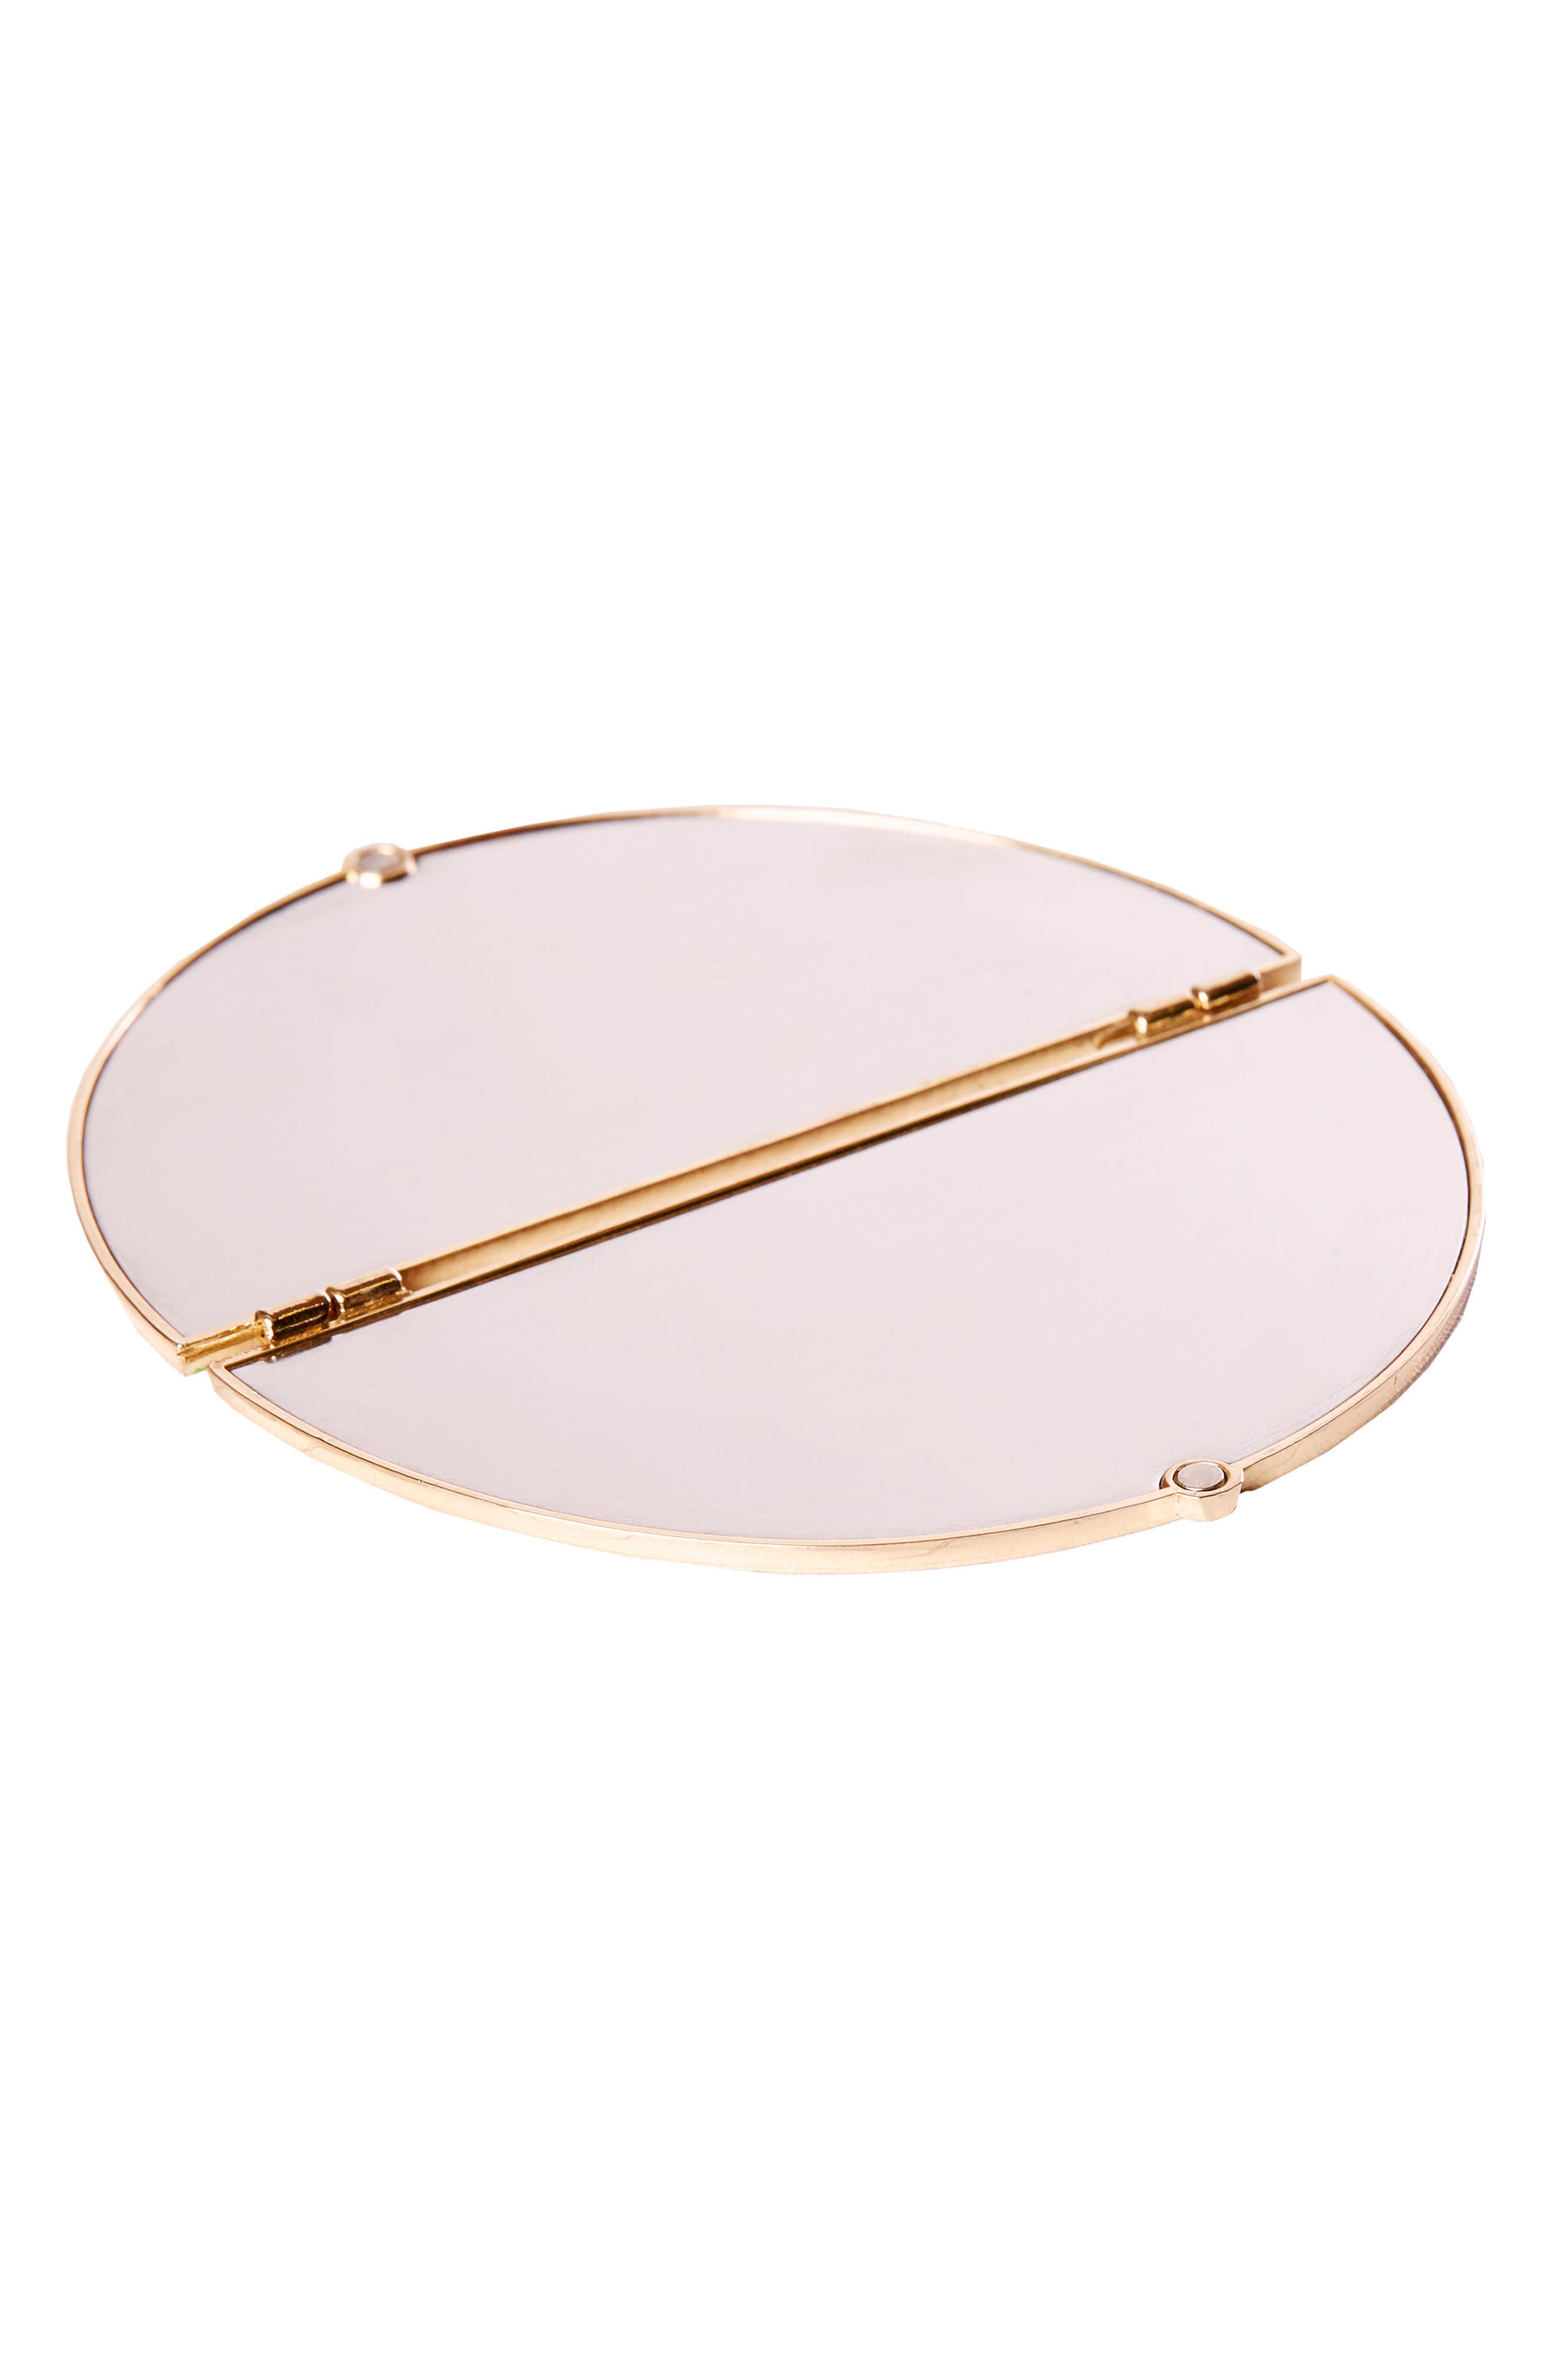 Skinny Dip Compact Mirror,                             Alternate thumbnail 3, color,                             NO COLOR